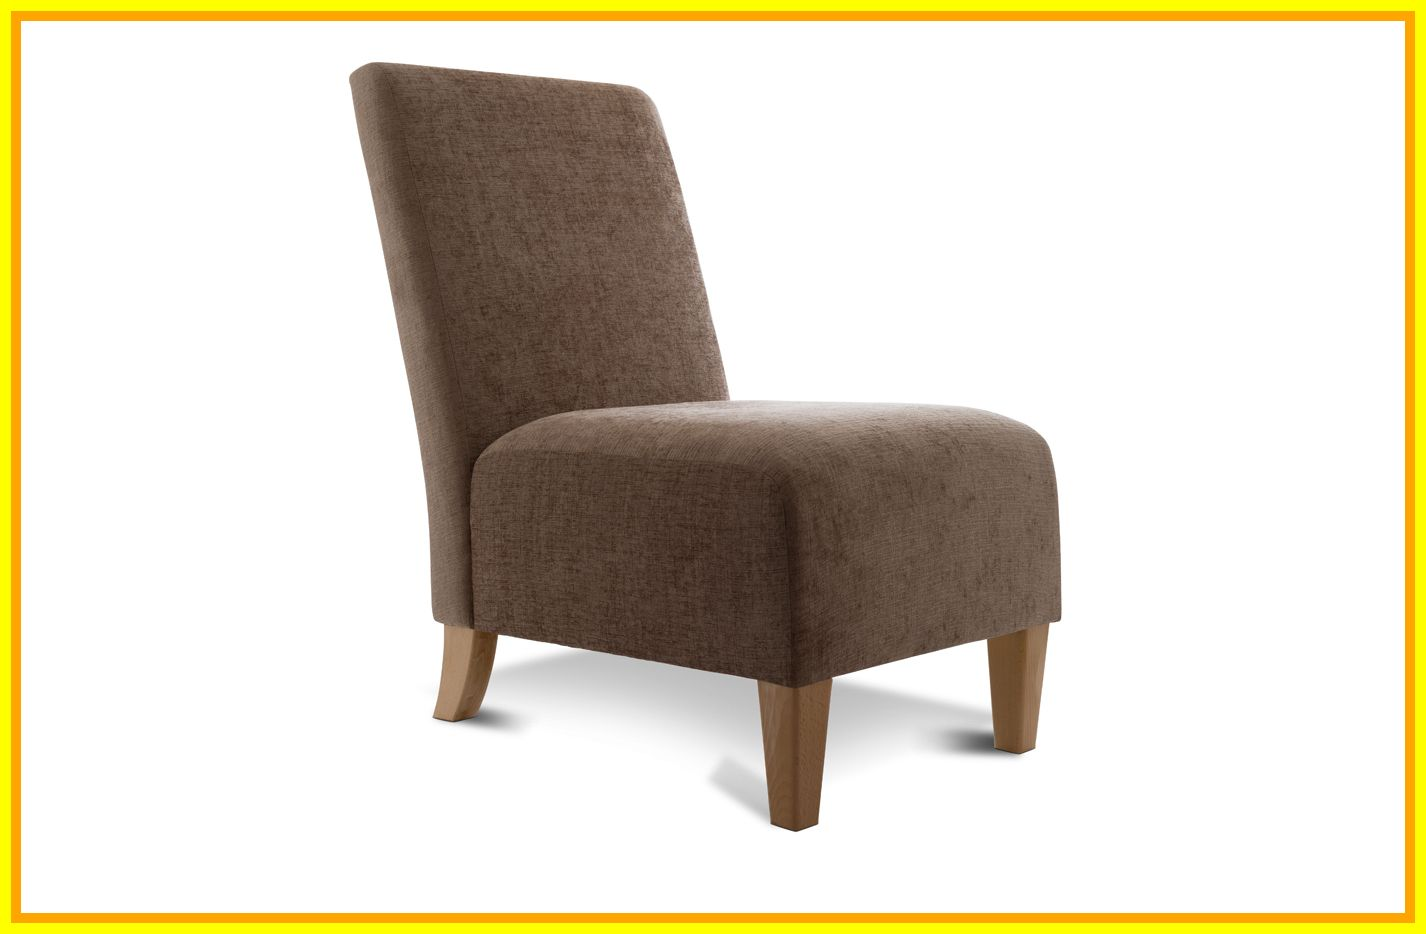 71 Reference Of Small Corner Chair For Bedroom Uk In 2020 Small Bedroom Sofa Small Apartment Furniture Small Chair For Bedroom